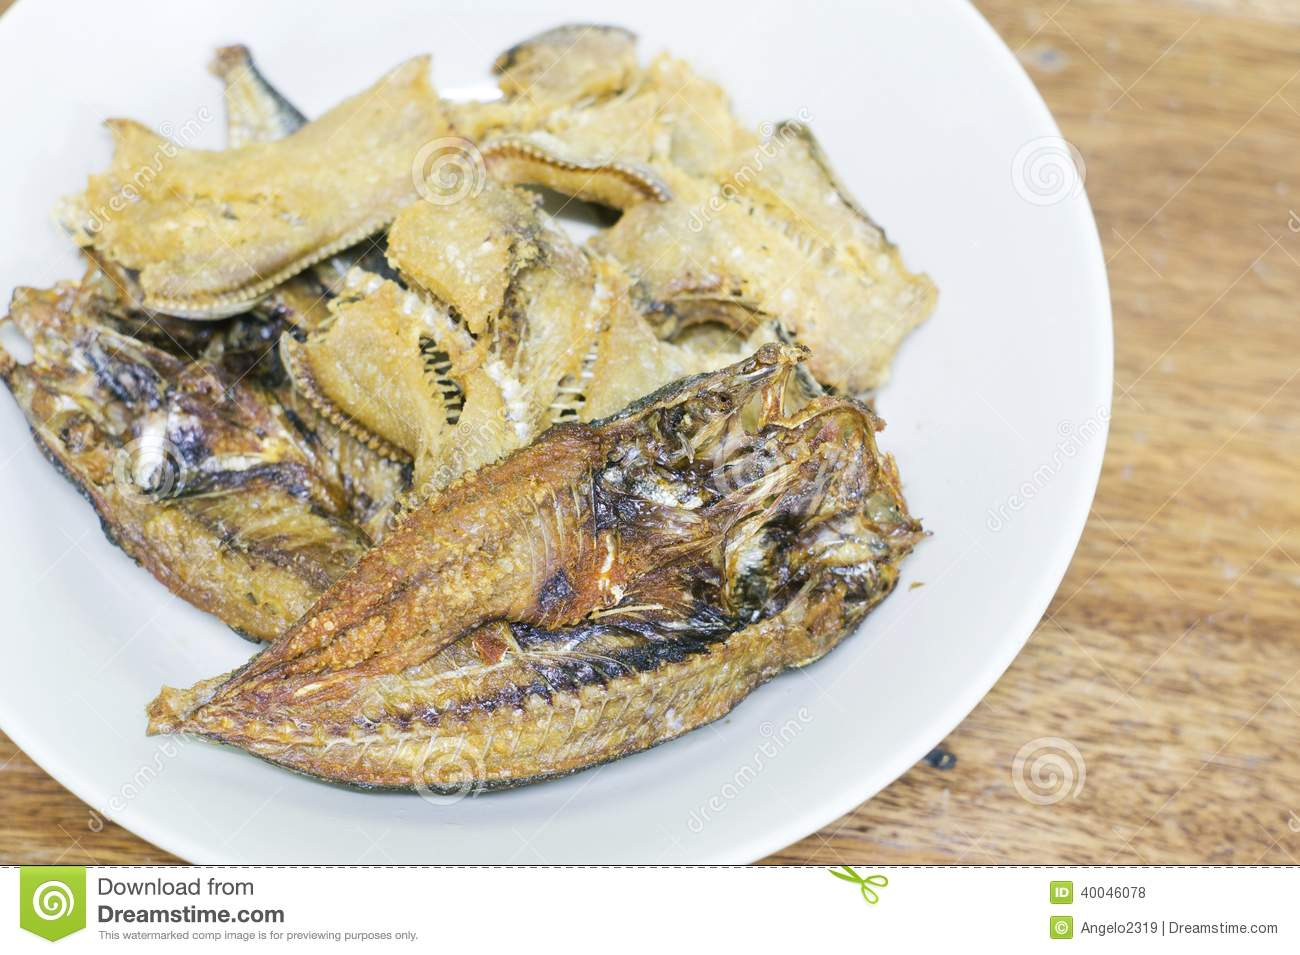 Best Tropical Fish Dried Food